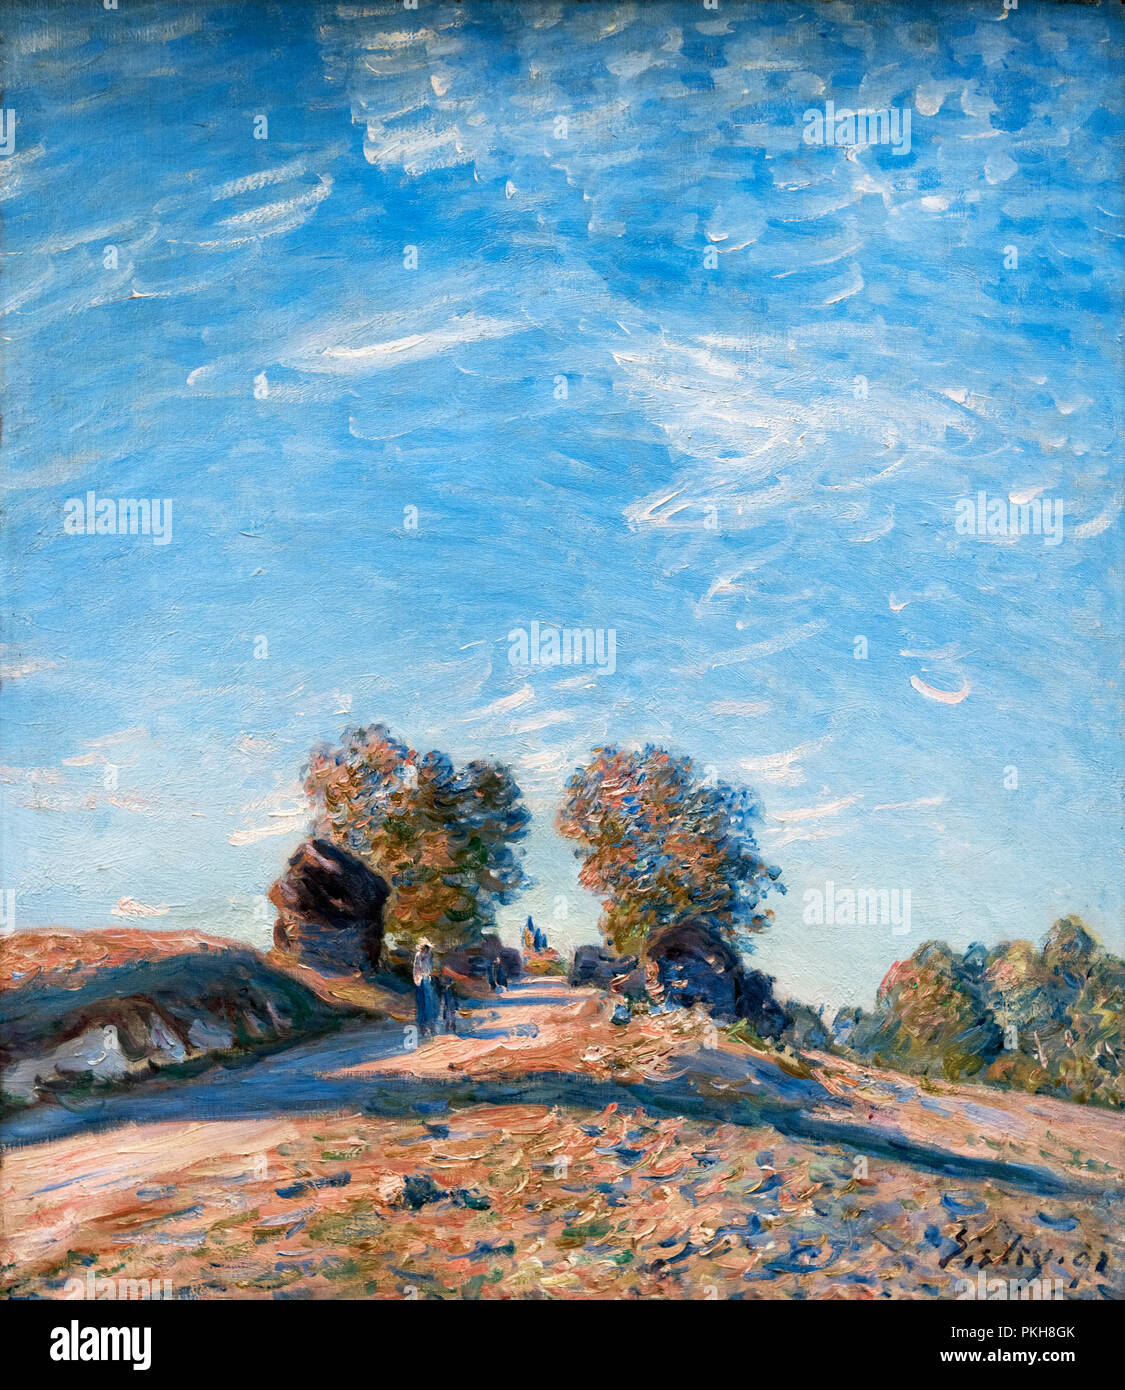 Chemin Montant au Soleil (Path climbing towards the Sun) by Alfred Sisley (1839-1899), oil on canvas, 1891 - Stock Image